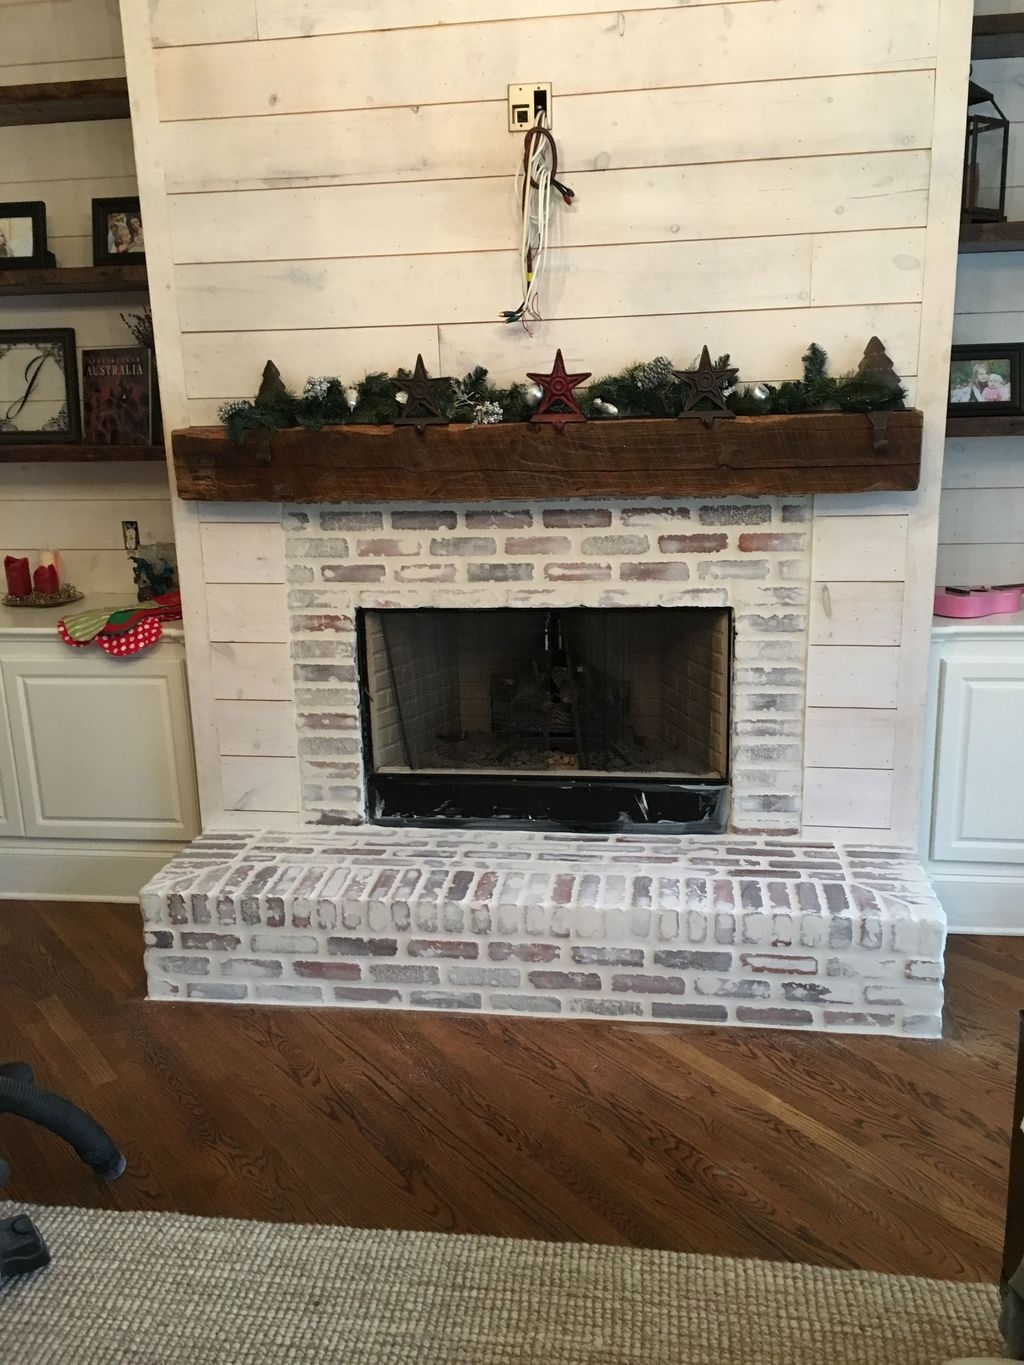 Modern Brick Fireplace Decorations Ideas For Living Room30